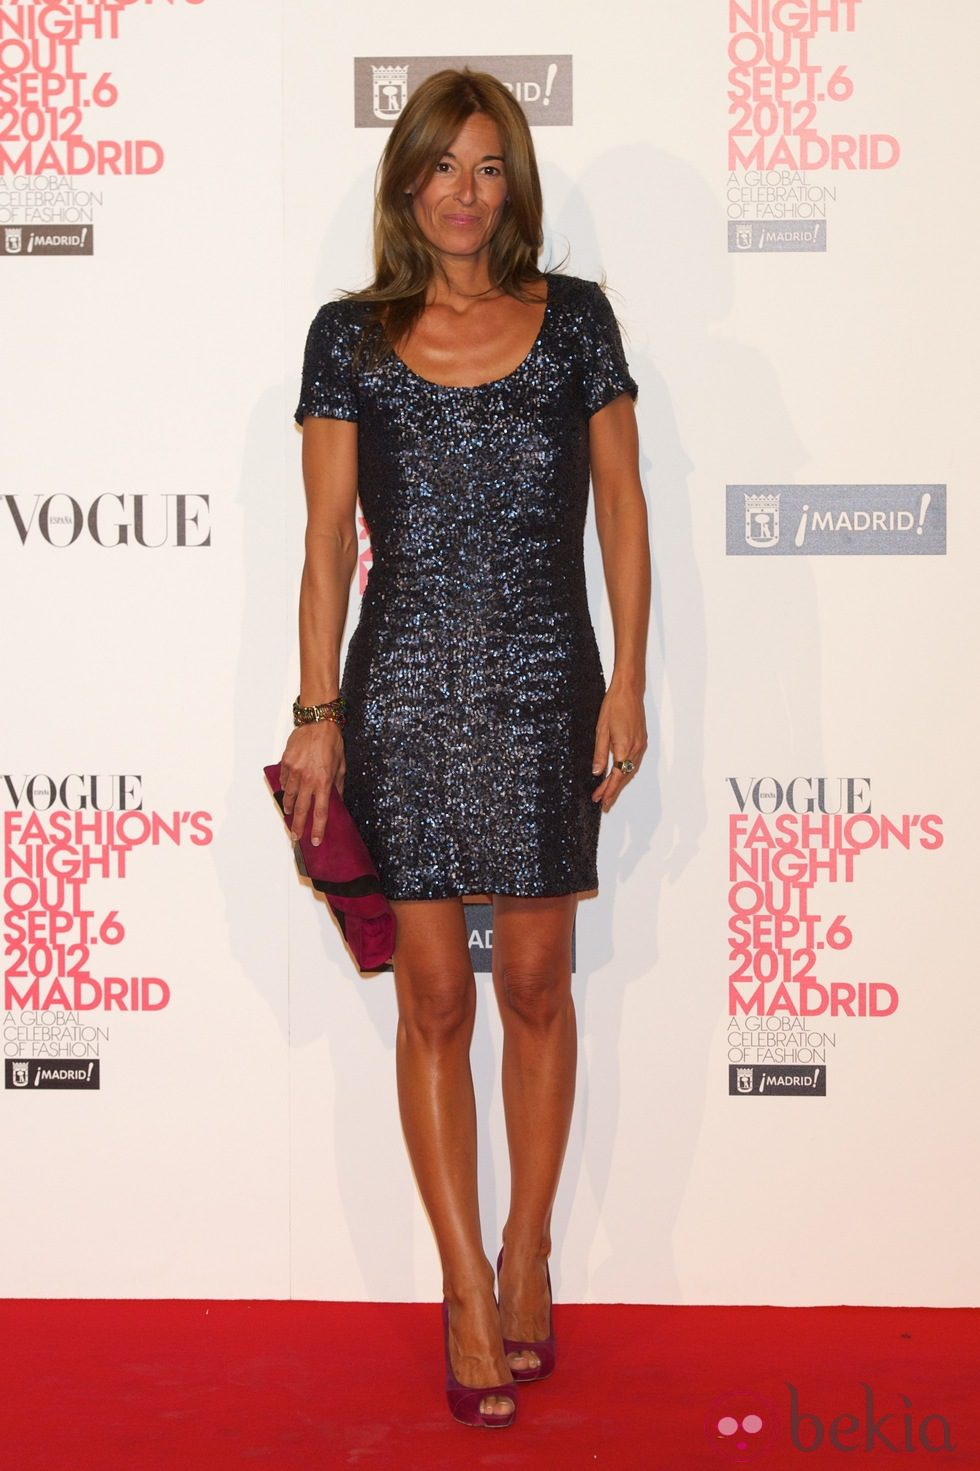 M nica mart n luque en la madrid fashion 39 s night out 2012 for Monica de martin